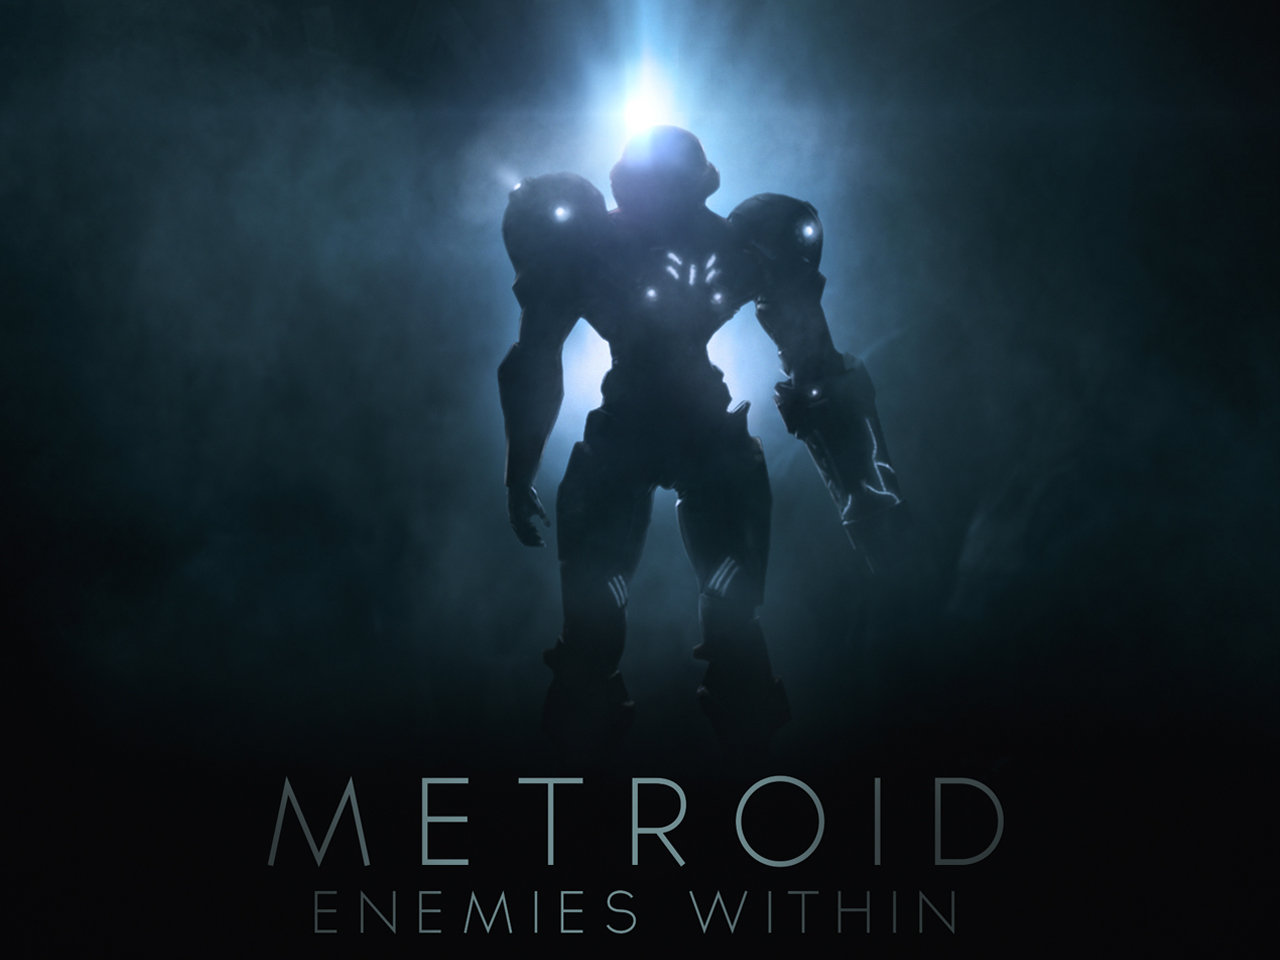 Metroid: Enemies Within